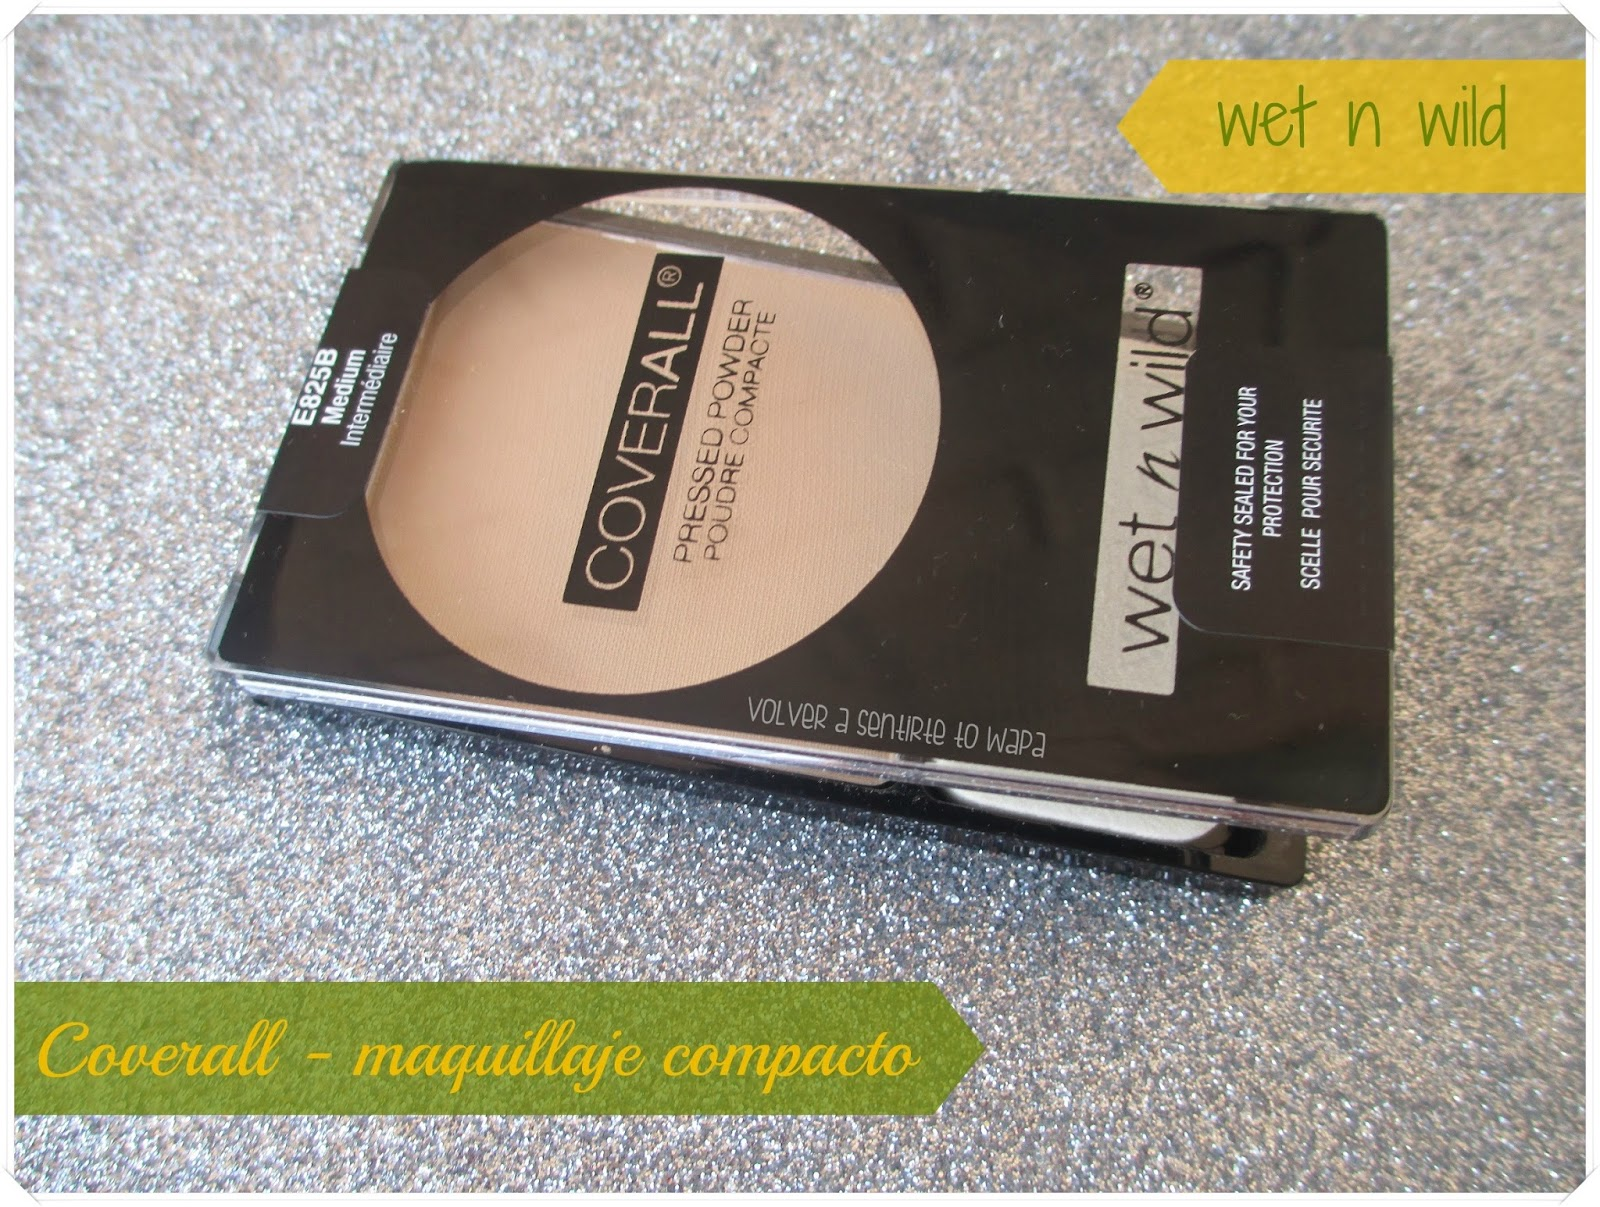 Coverall Pressed Powder, el maquillaje compacto de Wet n' Wild